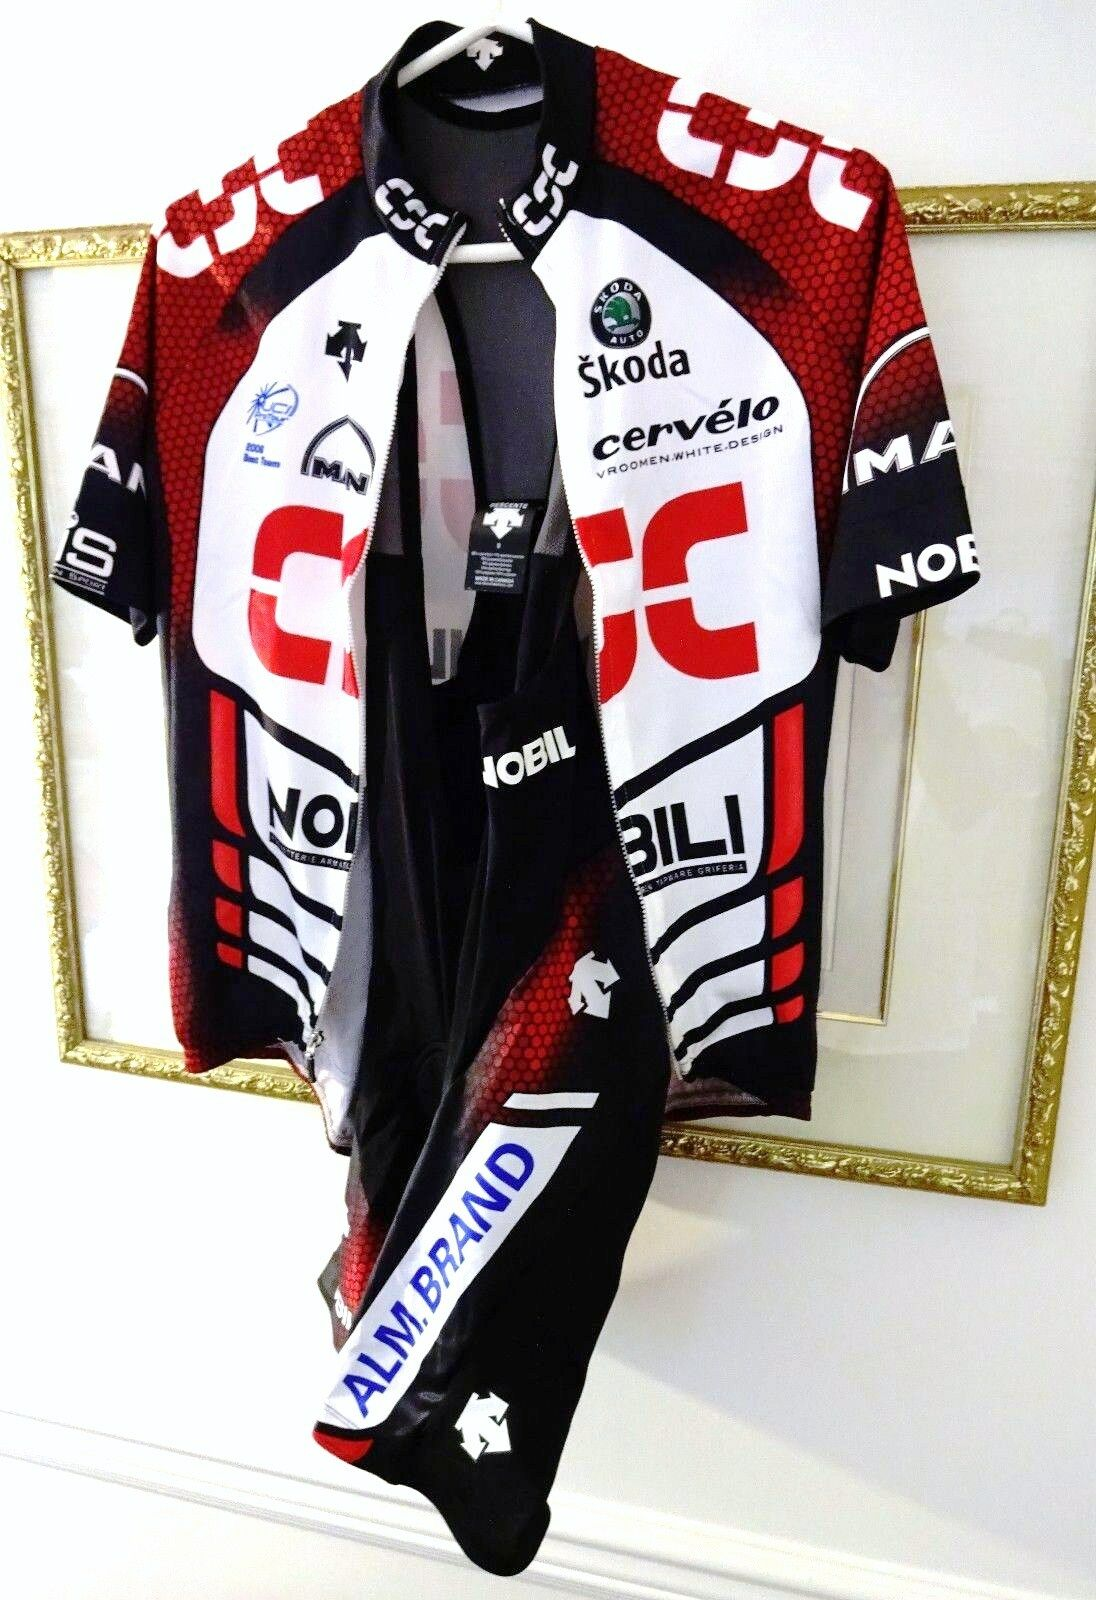 DESCENTE CSC CERVELO BIB SHORTS, SHORT SLEEVE JERSEY, GLOVES & BOTTLE - SMALL